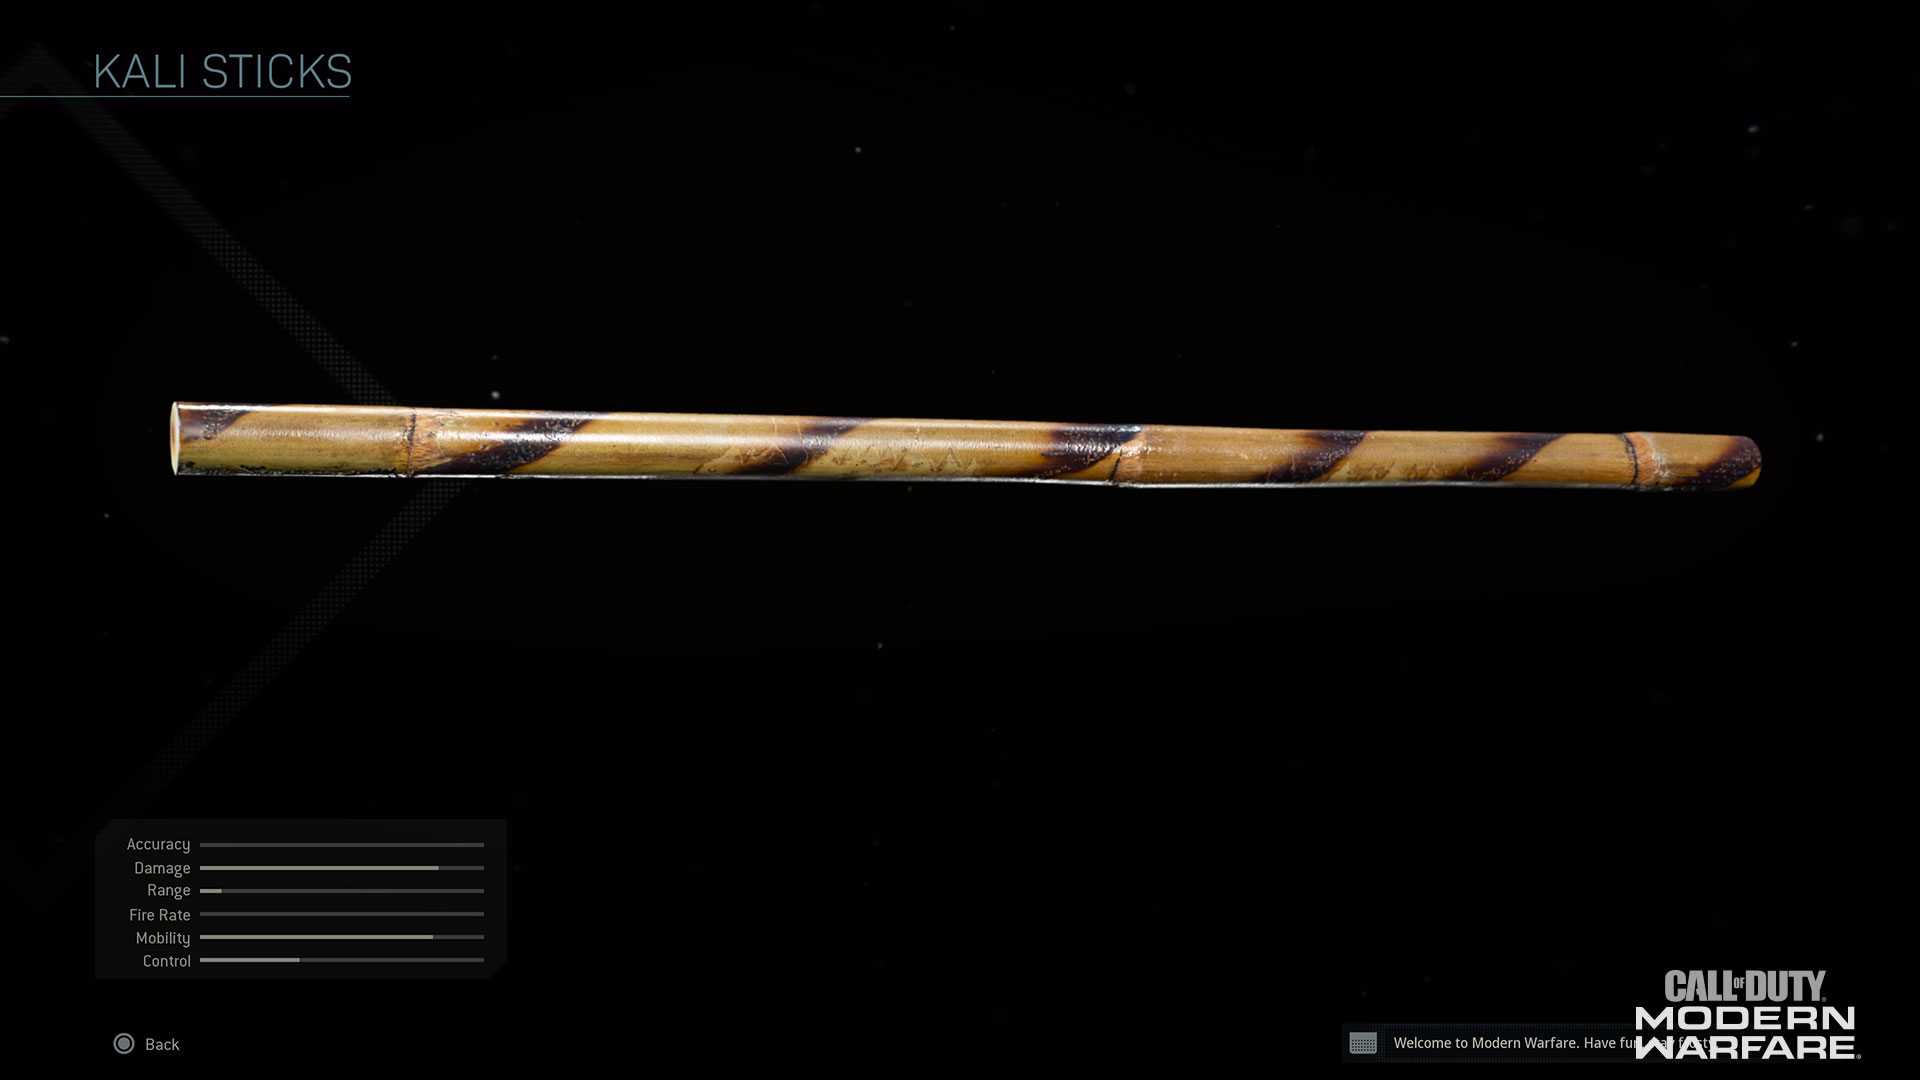 The Kali Sticks: How to Unlock the New Melee Weapon in Call of Duty®: Modern Warfare® - Image 1